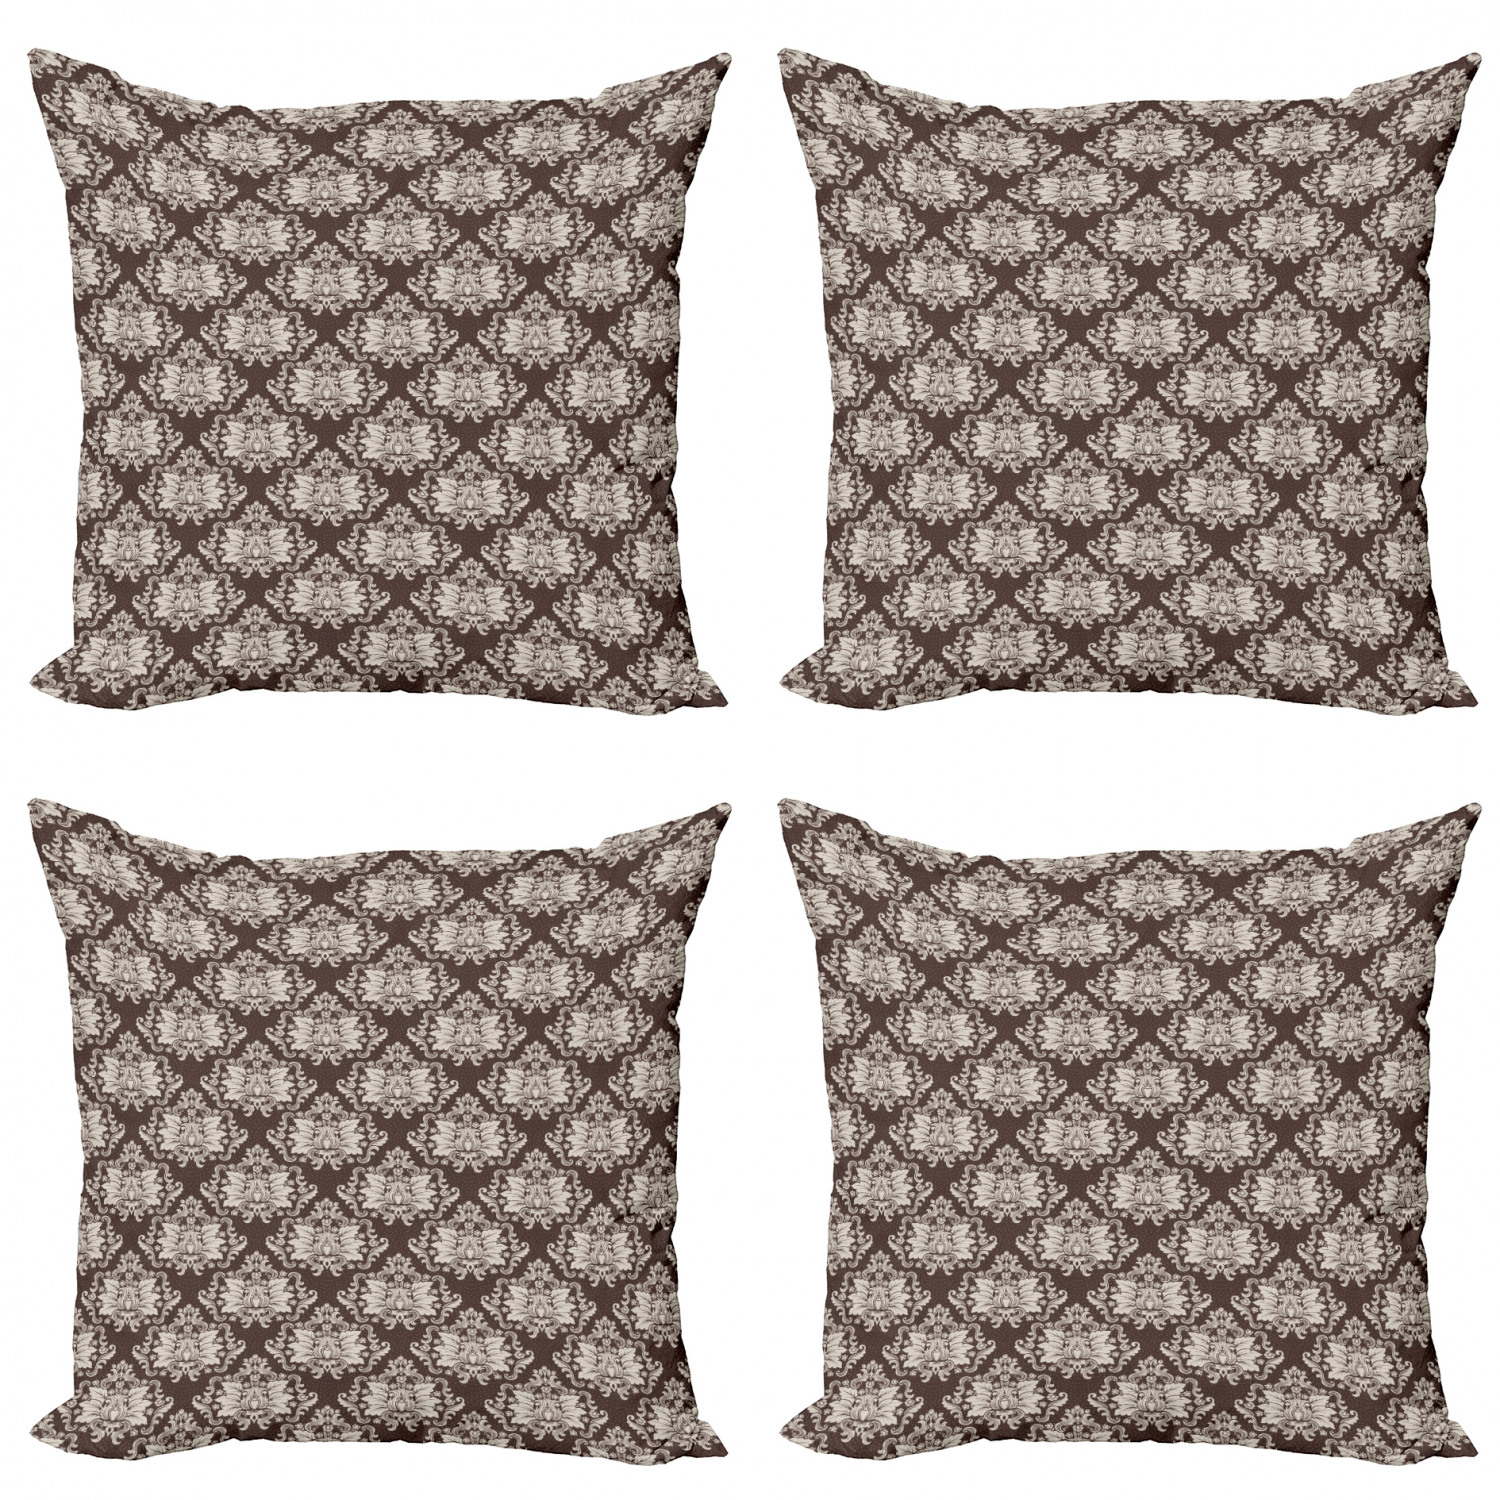 Damask Throw Pillow Cushion Case Pack Of 4 Victorian Floral Pattern With Blooming Foliage Leaves On Dark Toned Backdrop Modern Accent Double Sided Print 4 Sizes Brown And Beige By Ambesonne Walmart Com